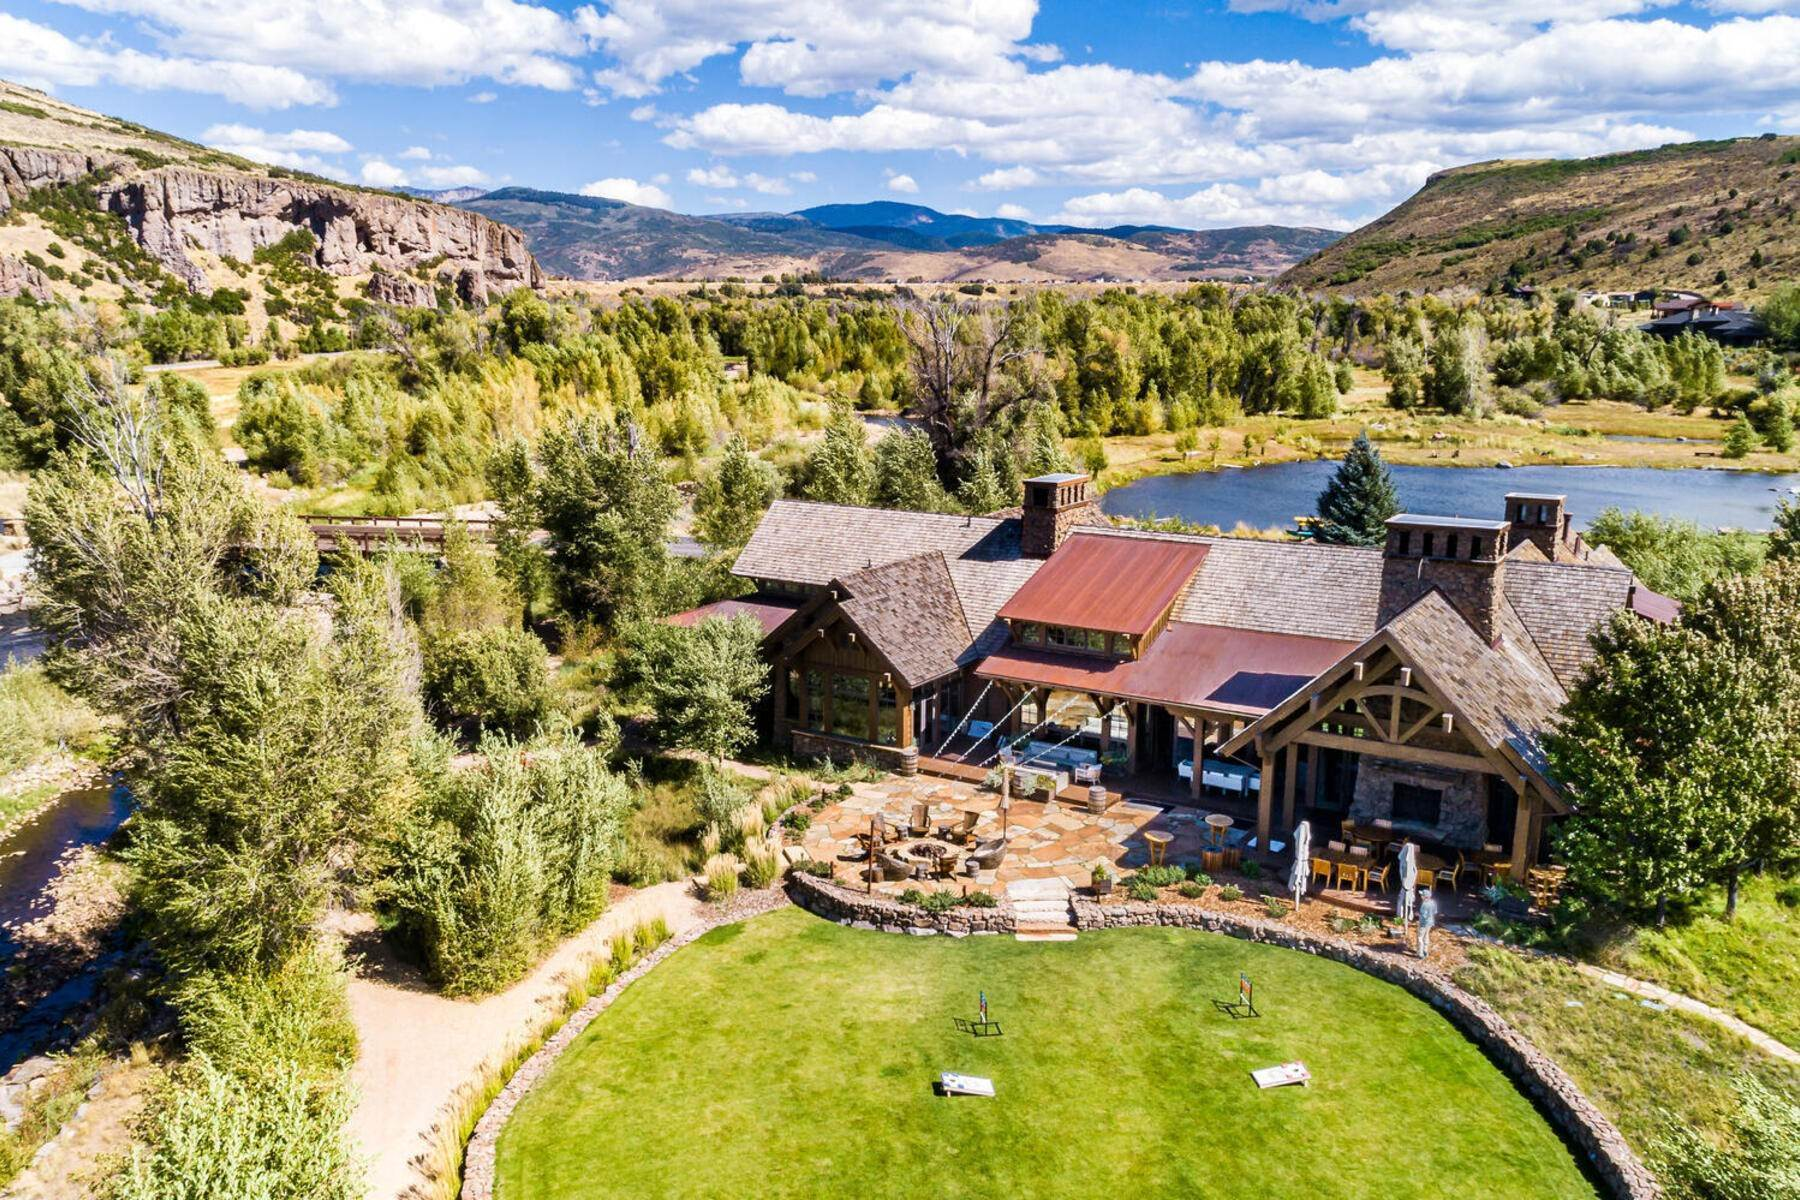 11. fractional ownership prop for Sale at 1/8 Fractional Ownership Opportunity In Brand New Kingfisher Cabin 7615 E Stardust Court #319E, 5.13 Heber City, Utah 84032 United States